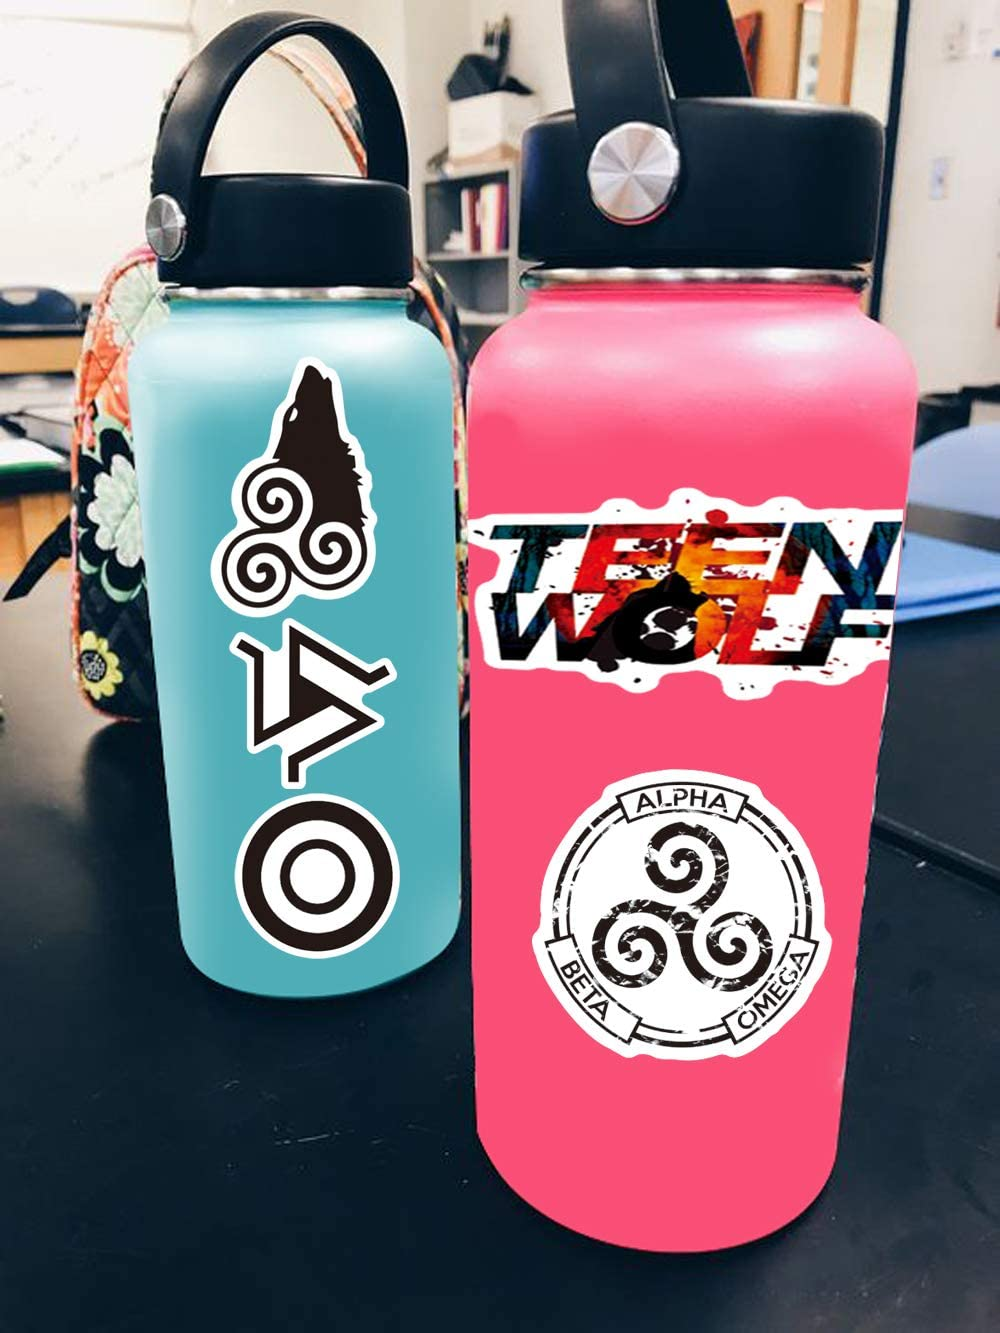 Avatar Stickers for Water Bottles,50 PackCartoon Stickers Pack,Waterproof,Aesthetic,Trendy Stickers for Teens,Girls Perfect for Waterbottle,Laptop,Phone,Travel Case